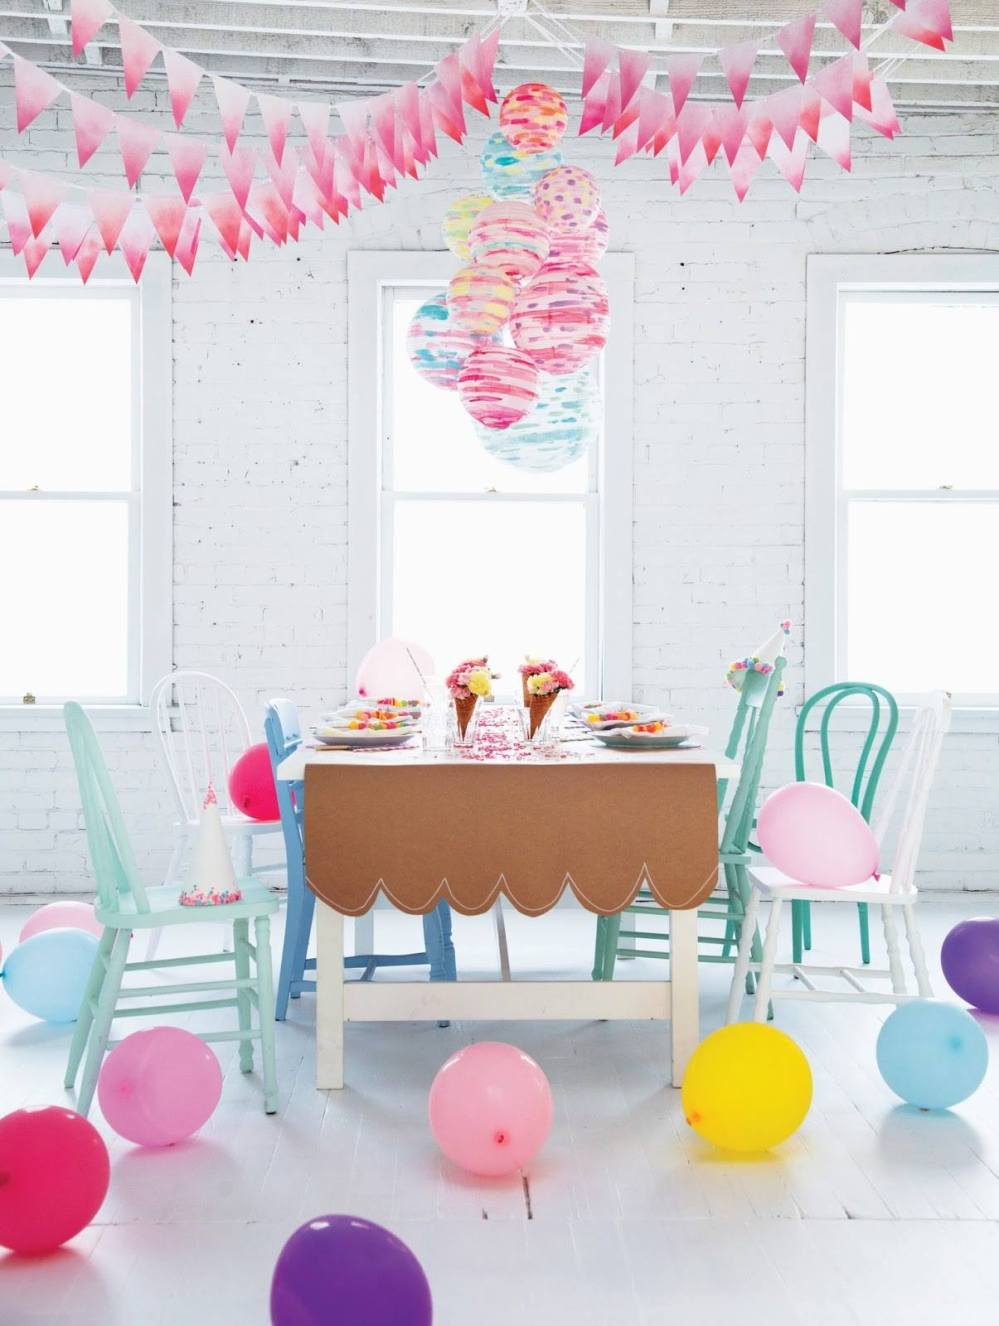 decorate-for-a-party-image-leslie-shewring